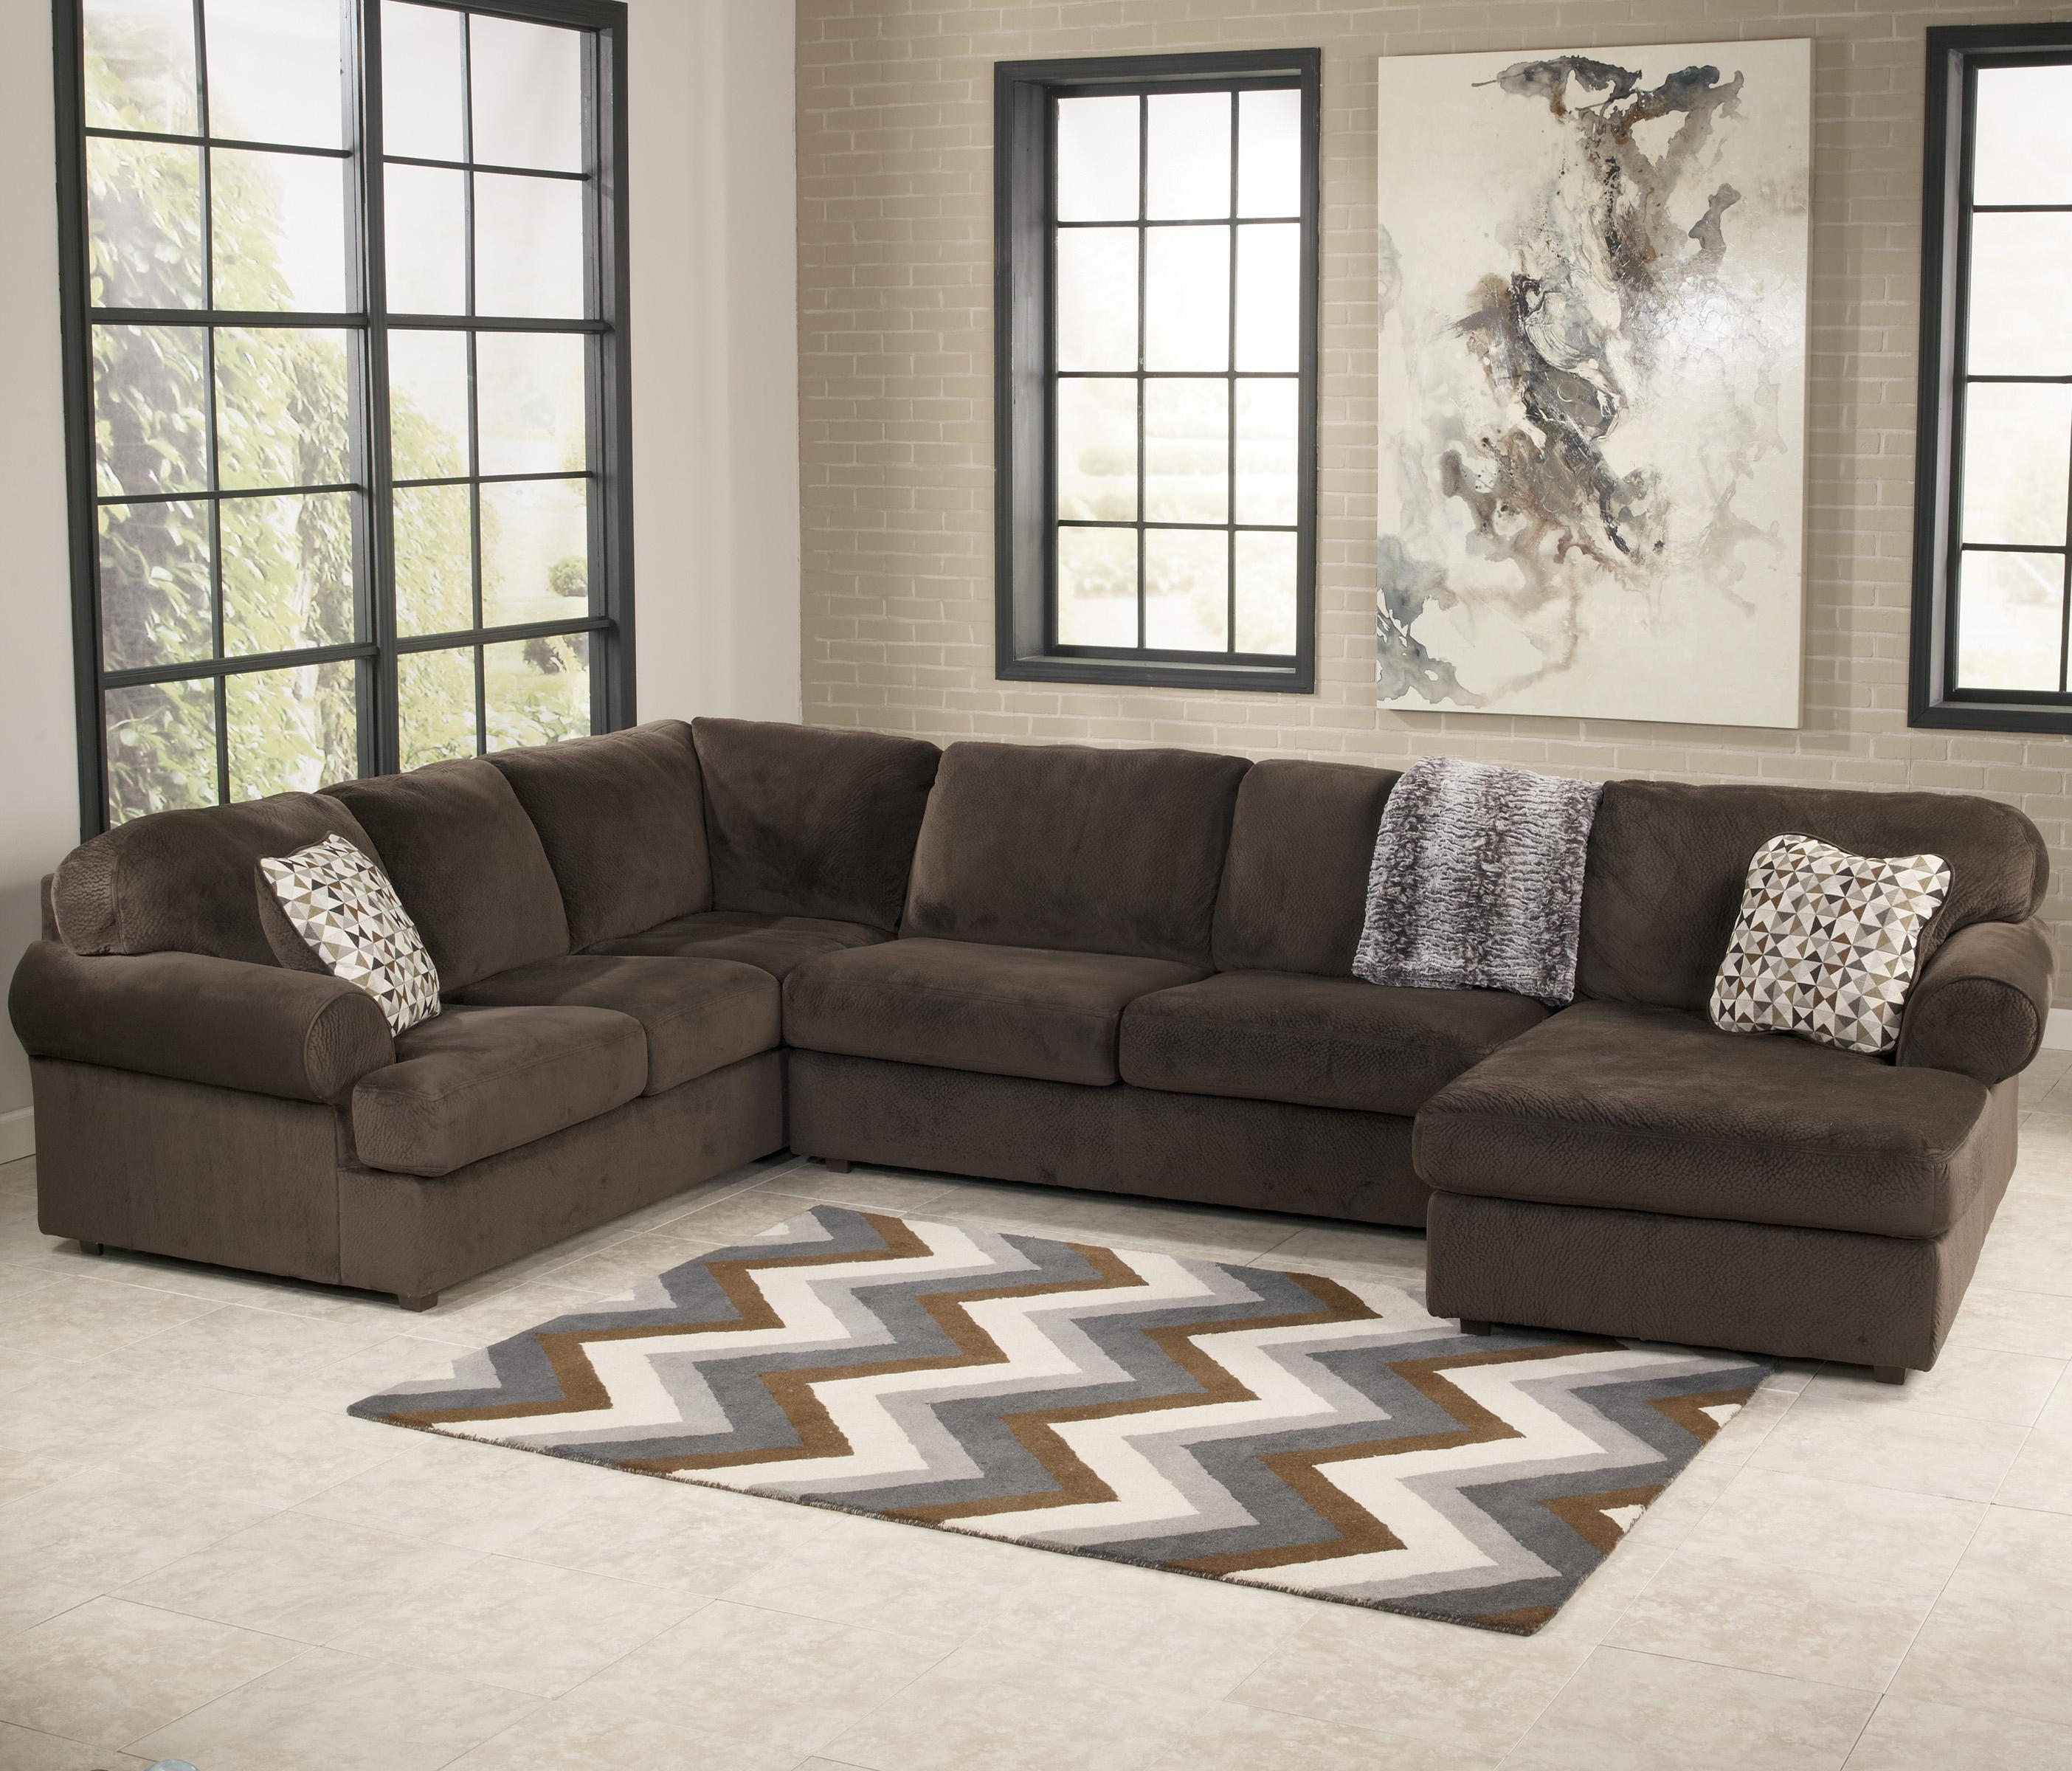 Ashley Signature Design Jessa Place – Chocolate Casual Sectional Intended For Well Known Ashley Furniture Sofa Chaises (View 12 of 15)